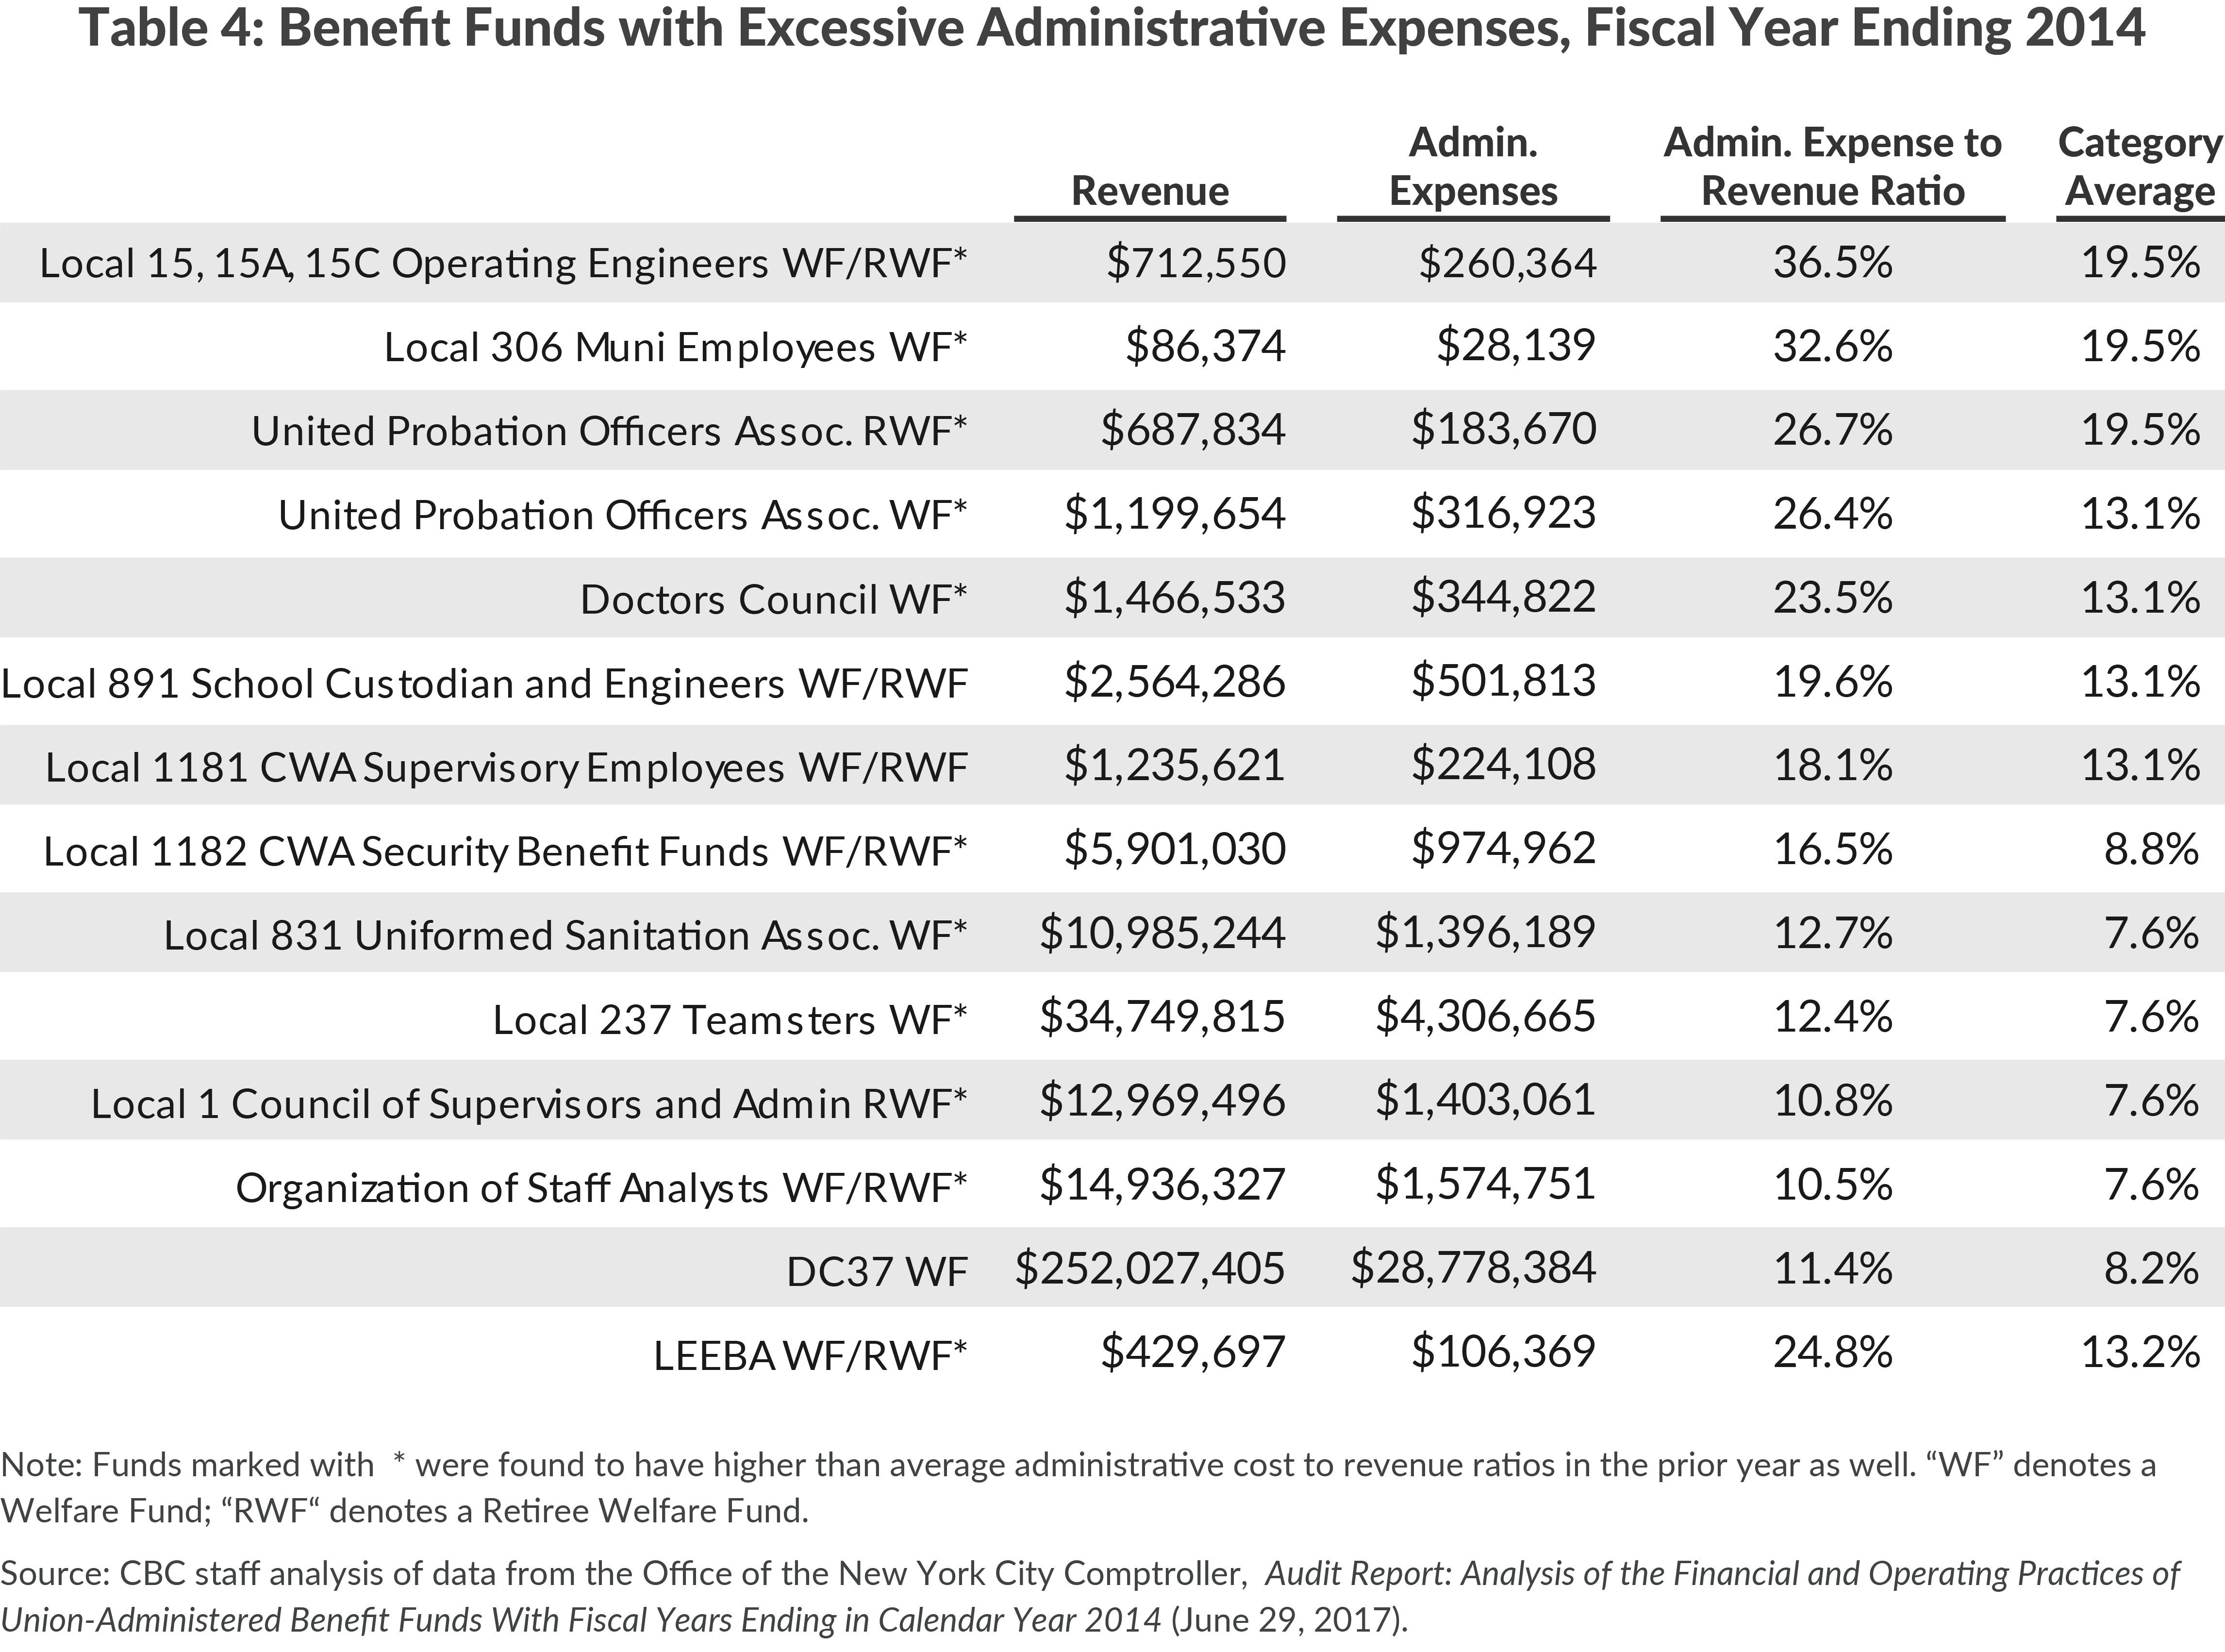 Table 4: Benefit Funds with Excessive Administrative Expenses, Fiscal Year Ending 2014